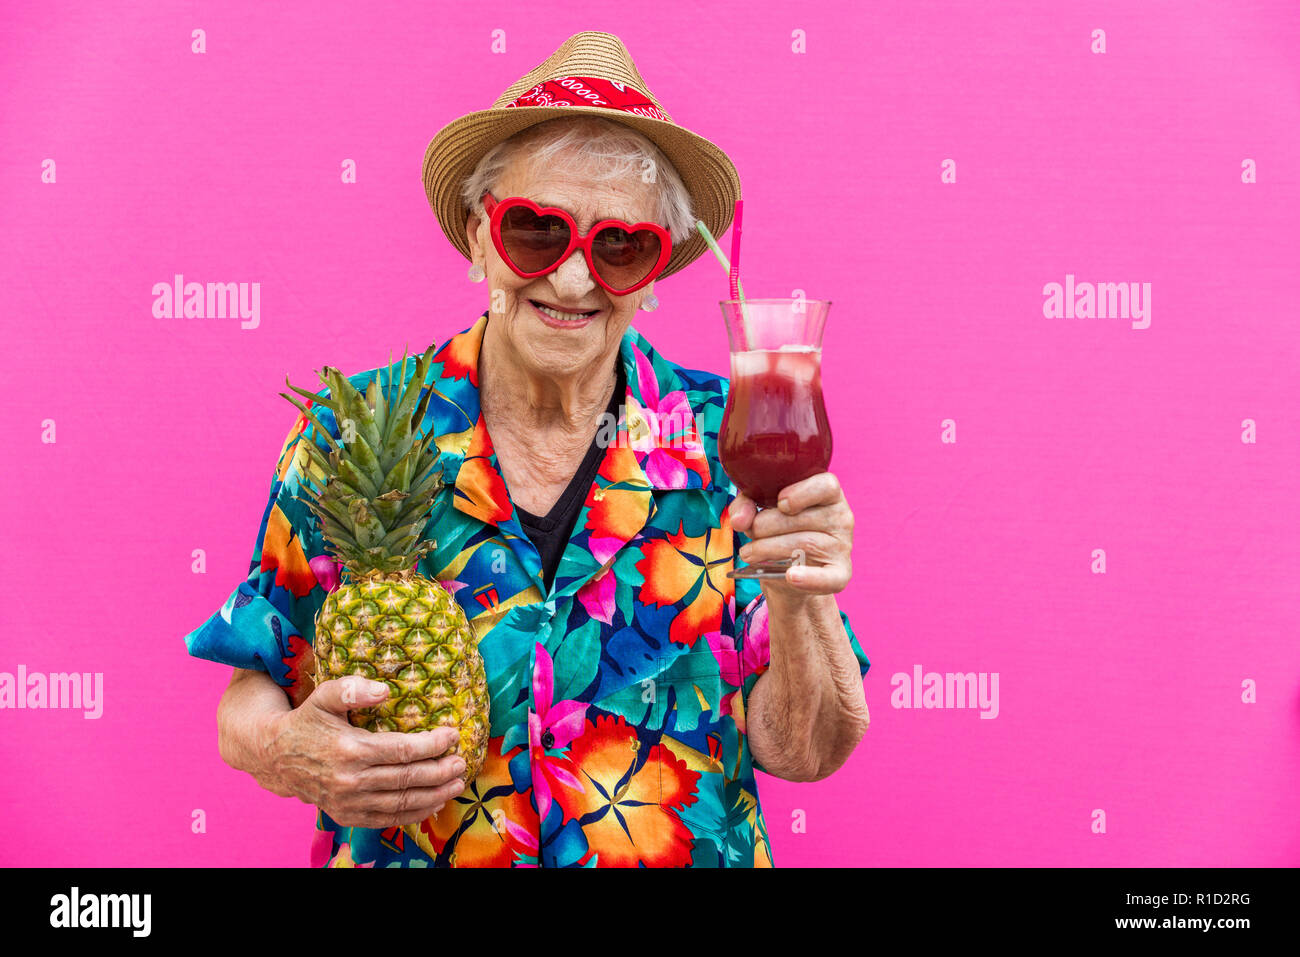 Funny and extravagant senior woman posing on colored background - Youthful old woman in the sixties having fun and partying - Stock Image